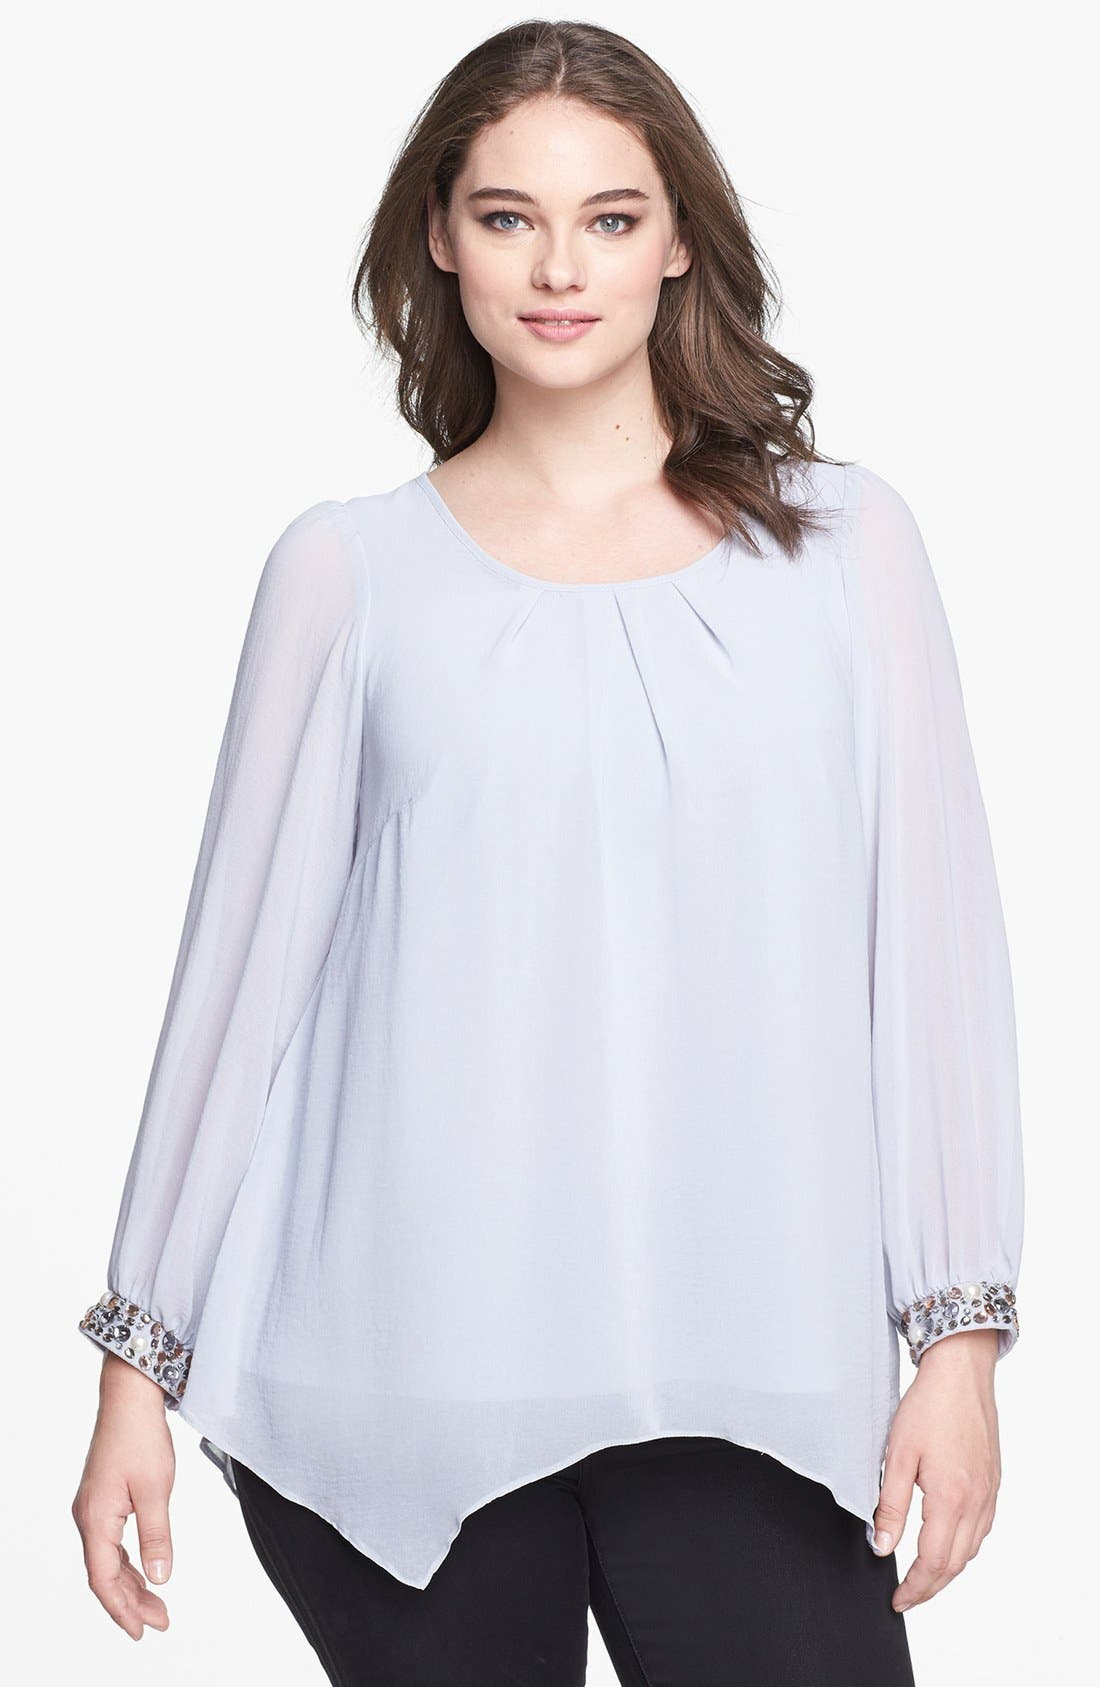 Alternate Image 1 Selected - Evans Embellished Cuff Chiffon Blouse (Plus Size)